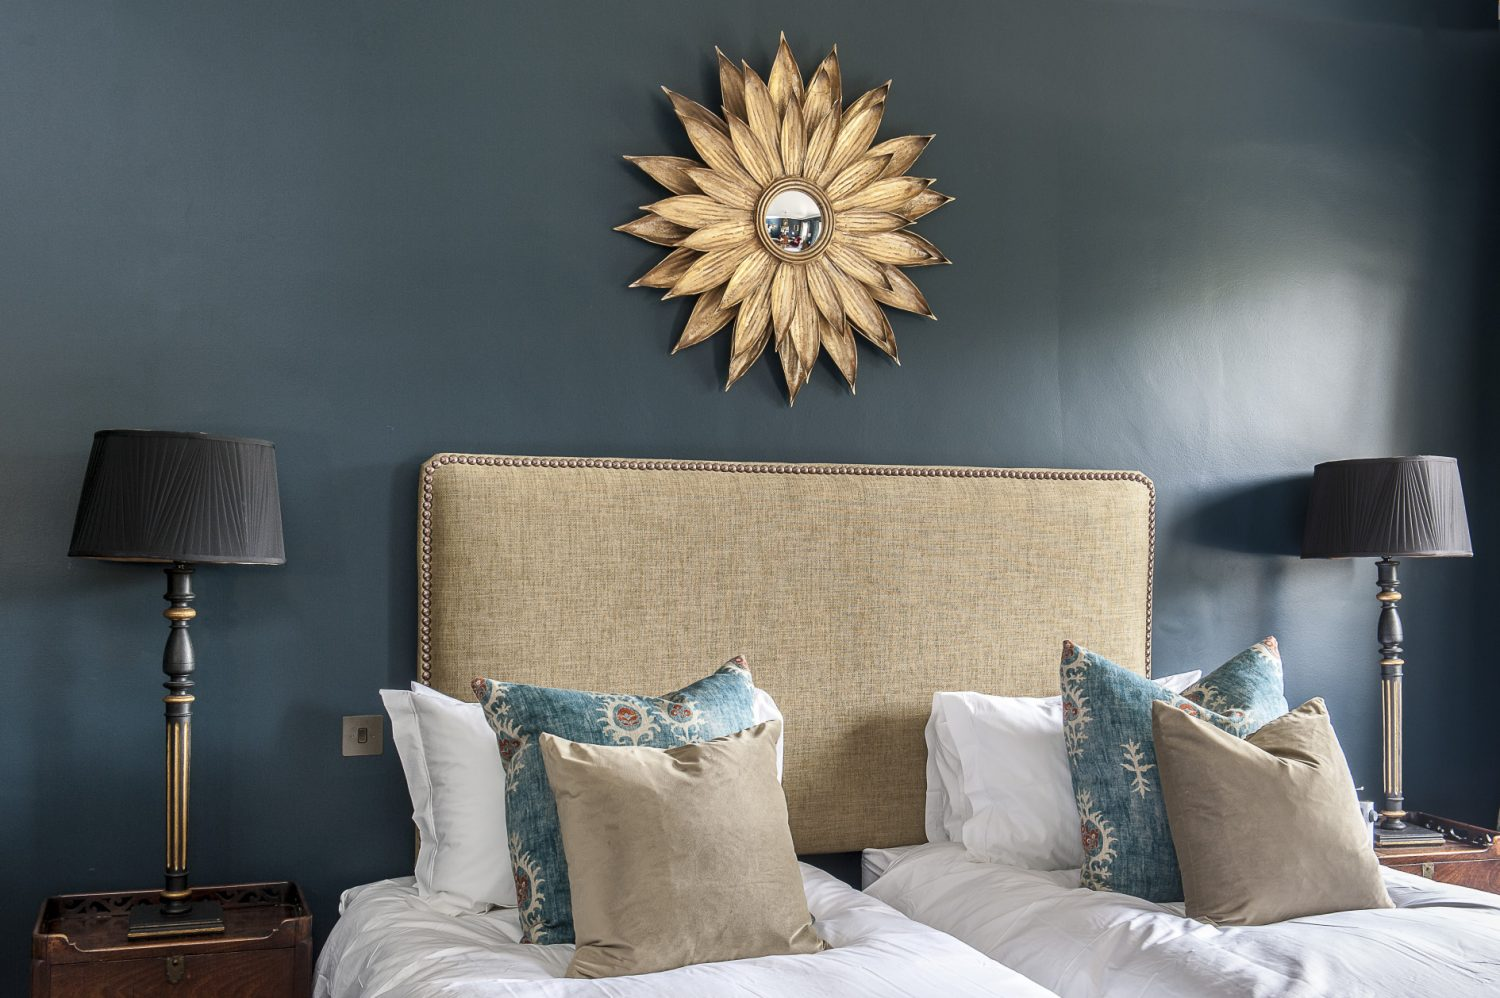 The walls of Henry's Room are painted in Hague Blue by Farrow & Ball. The sunburst mirror is from Barnstar, Rye